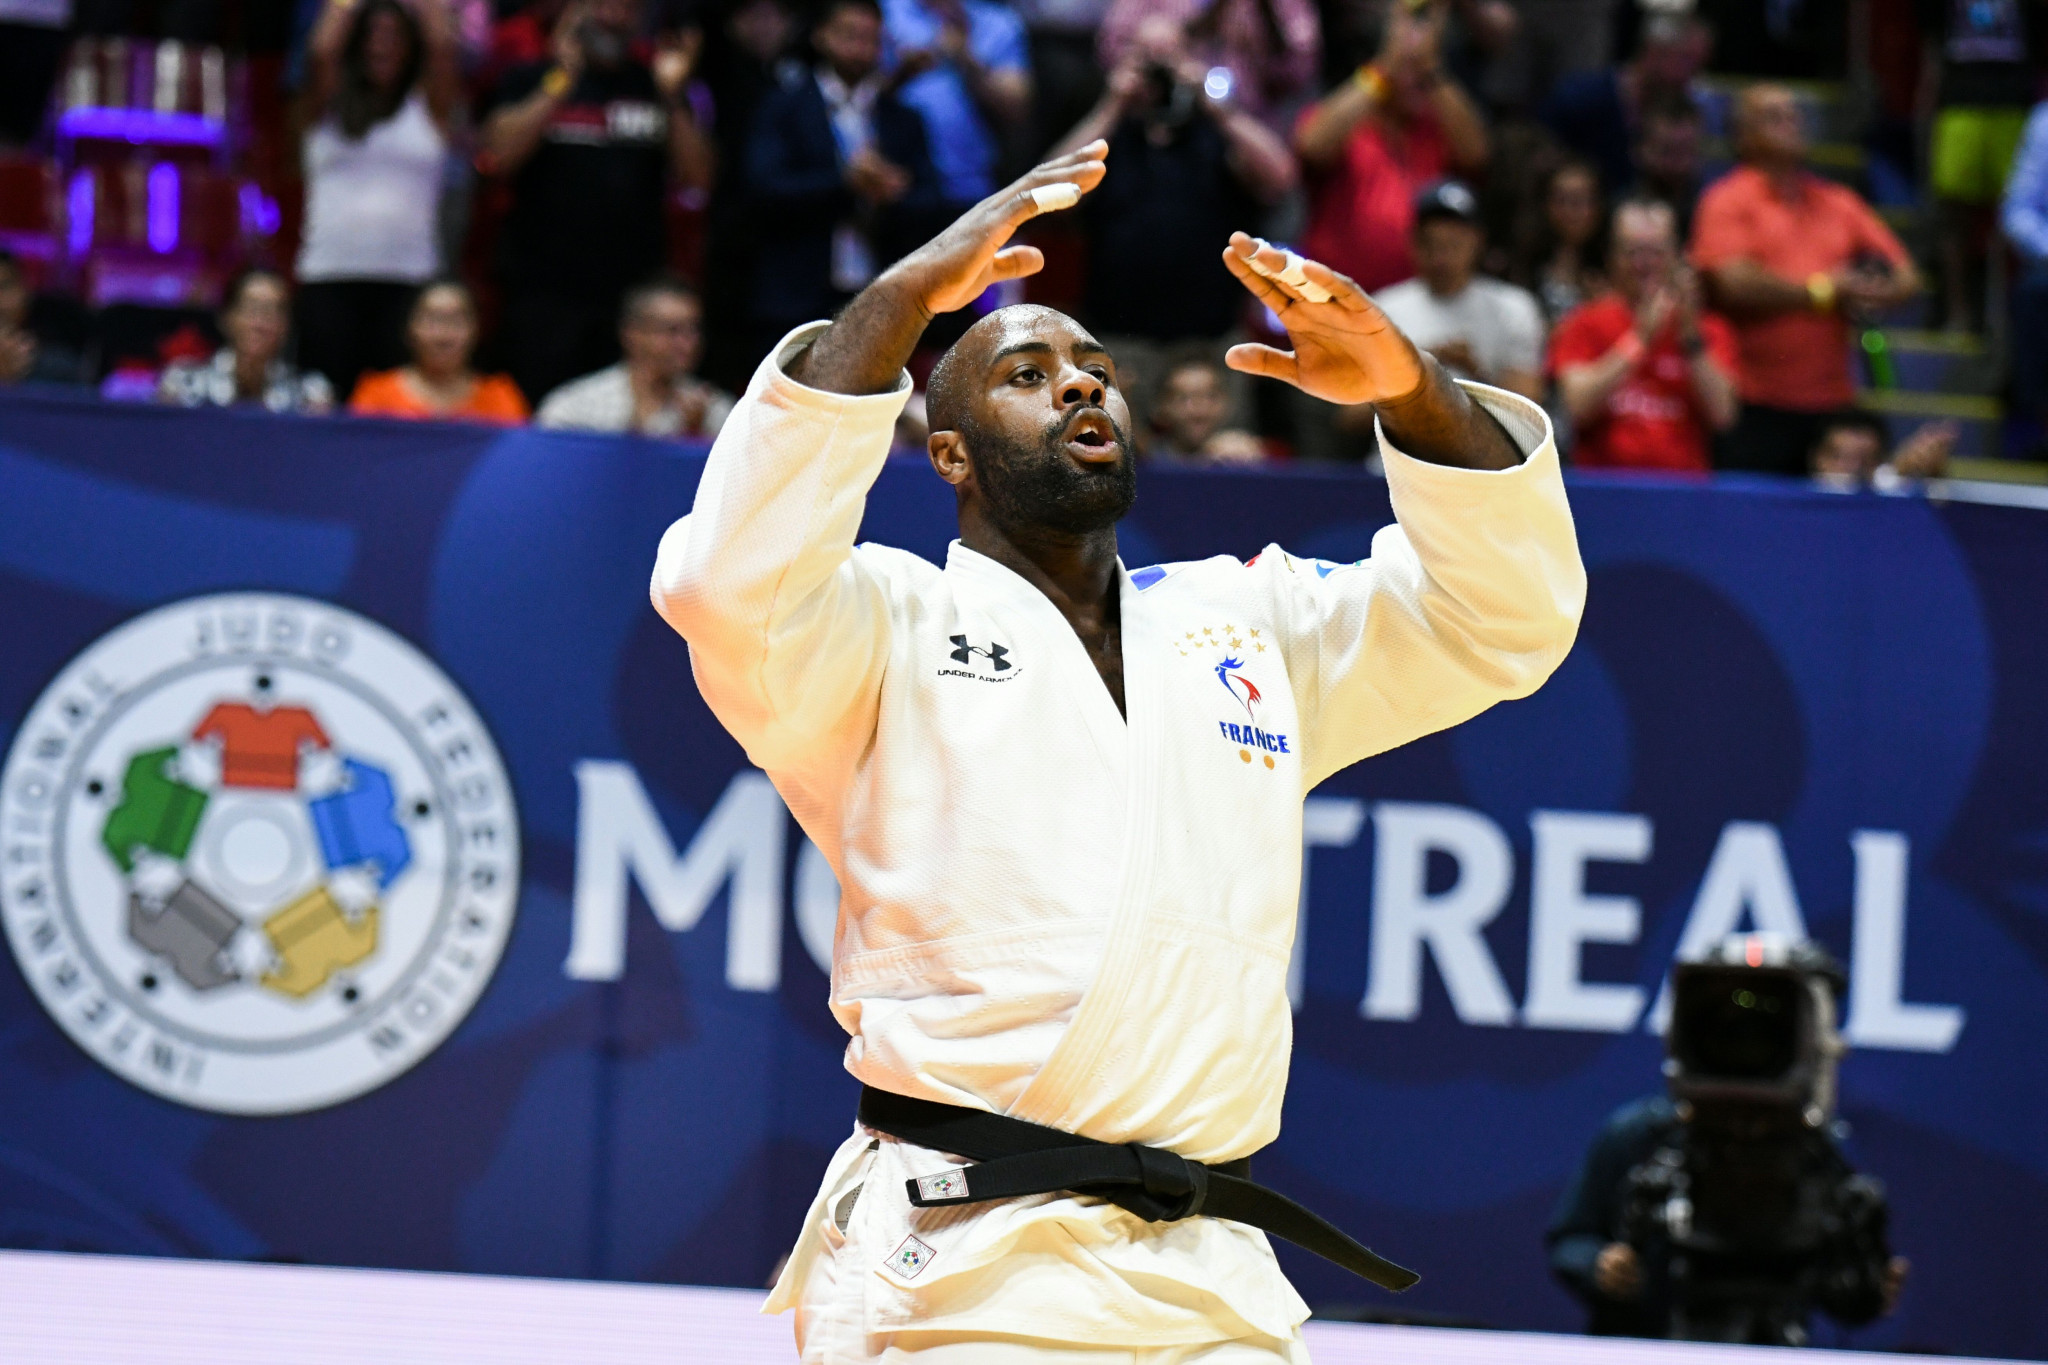 Riner eyes third Olympic gold after skipping IJF World Championships